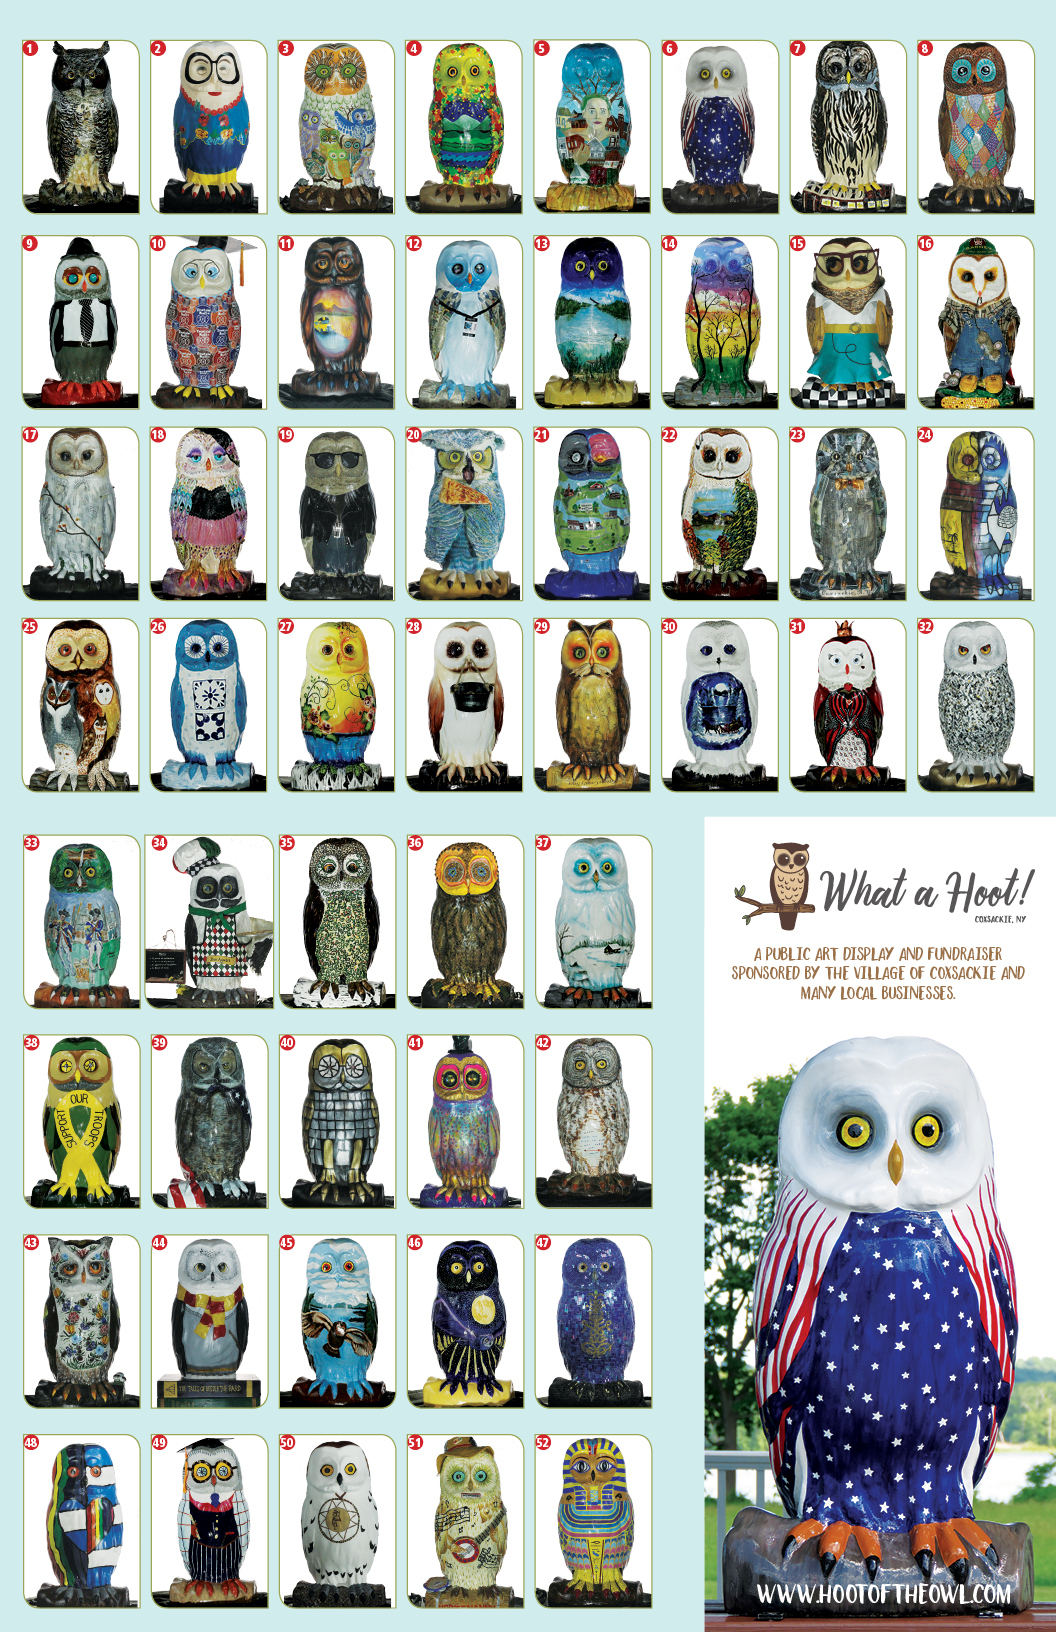 What a Hoot! brochure owls coxsackie